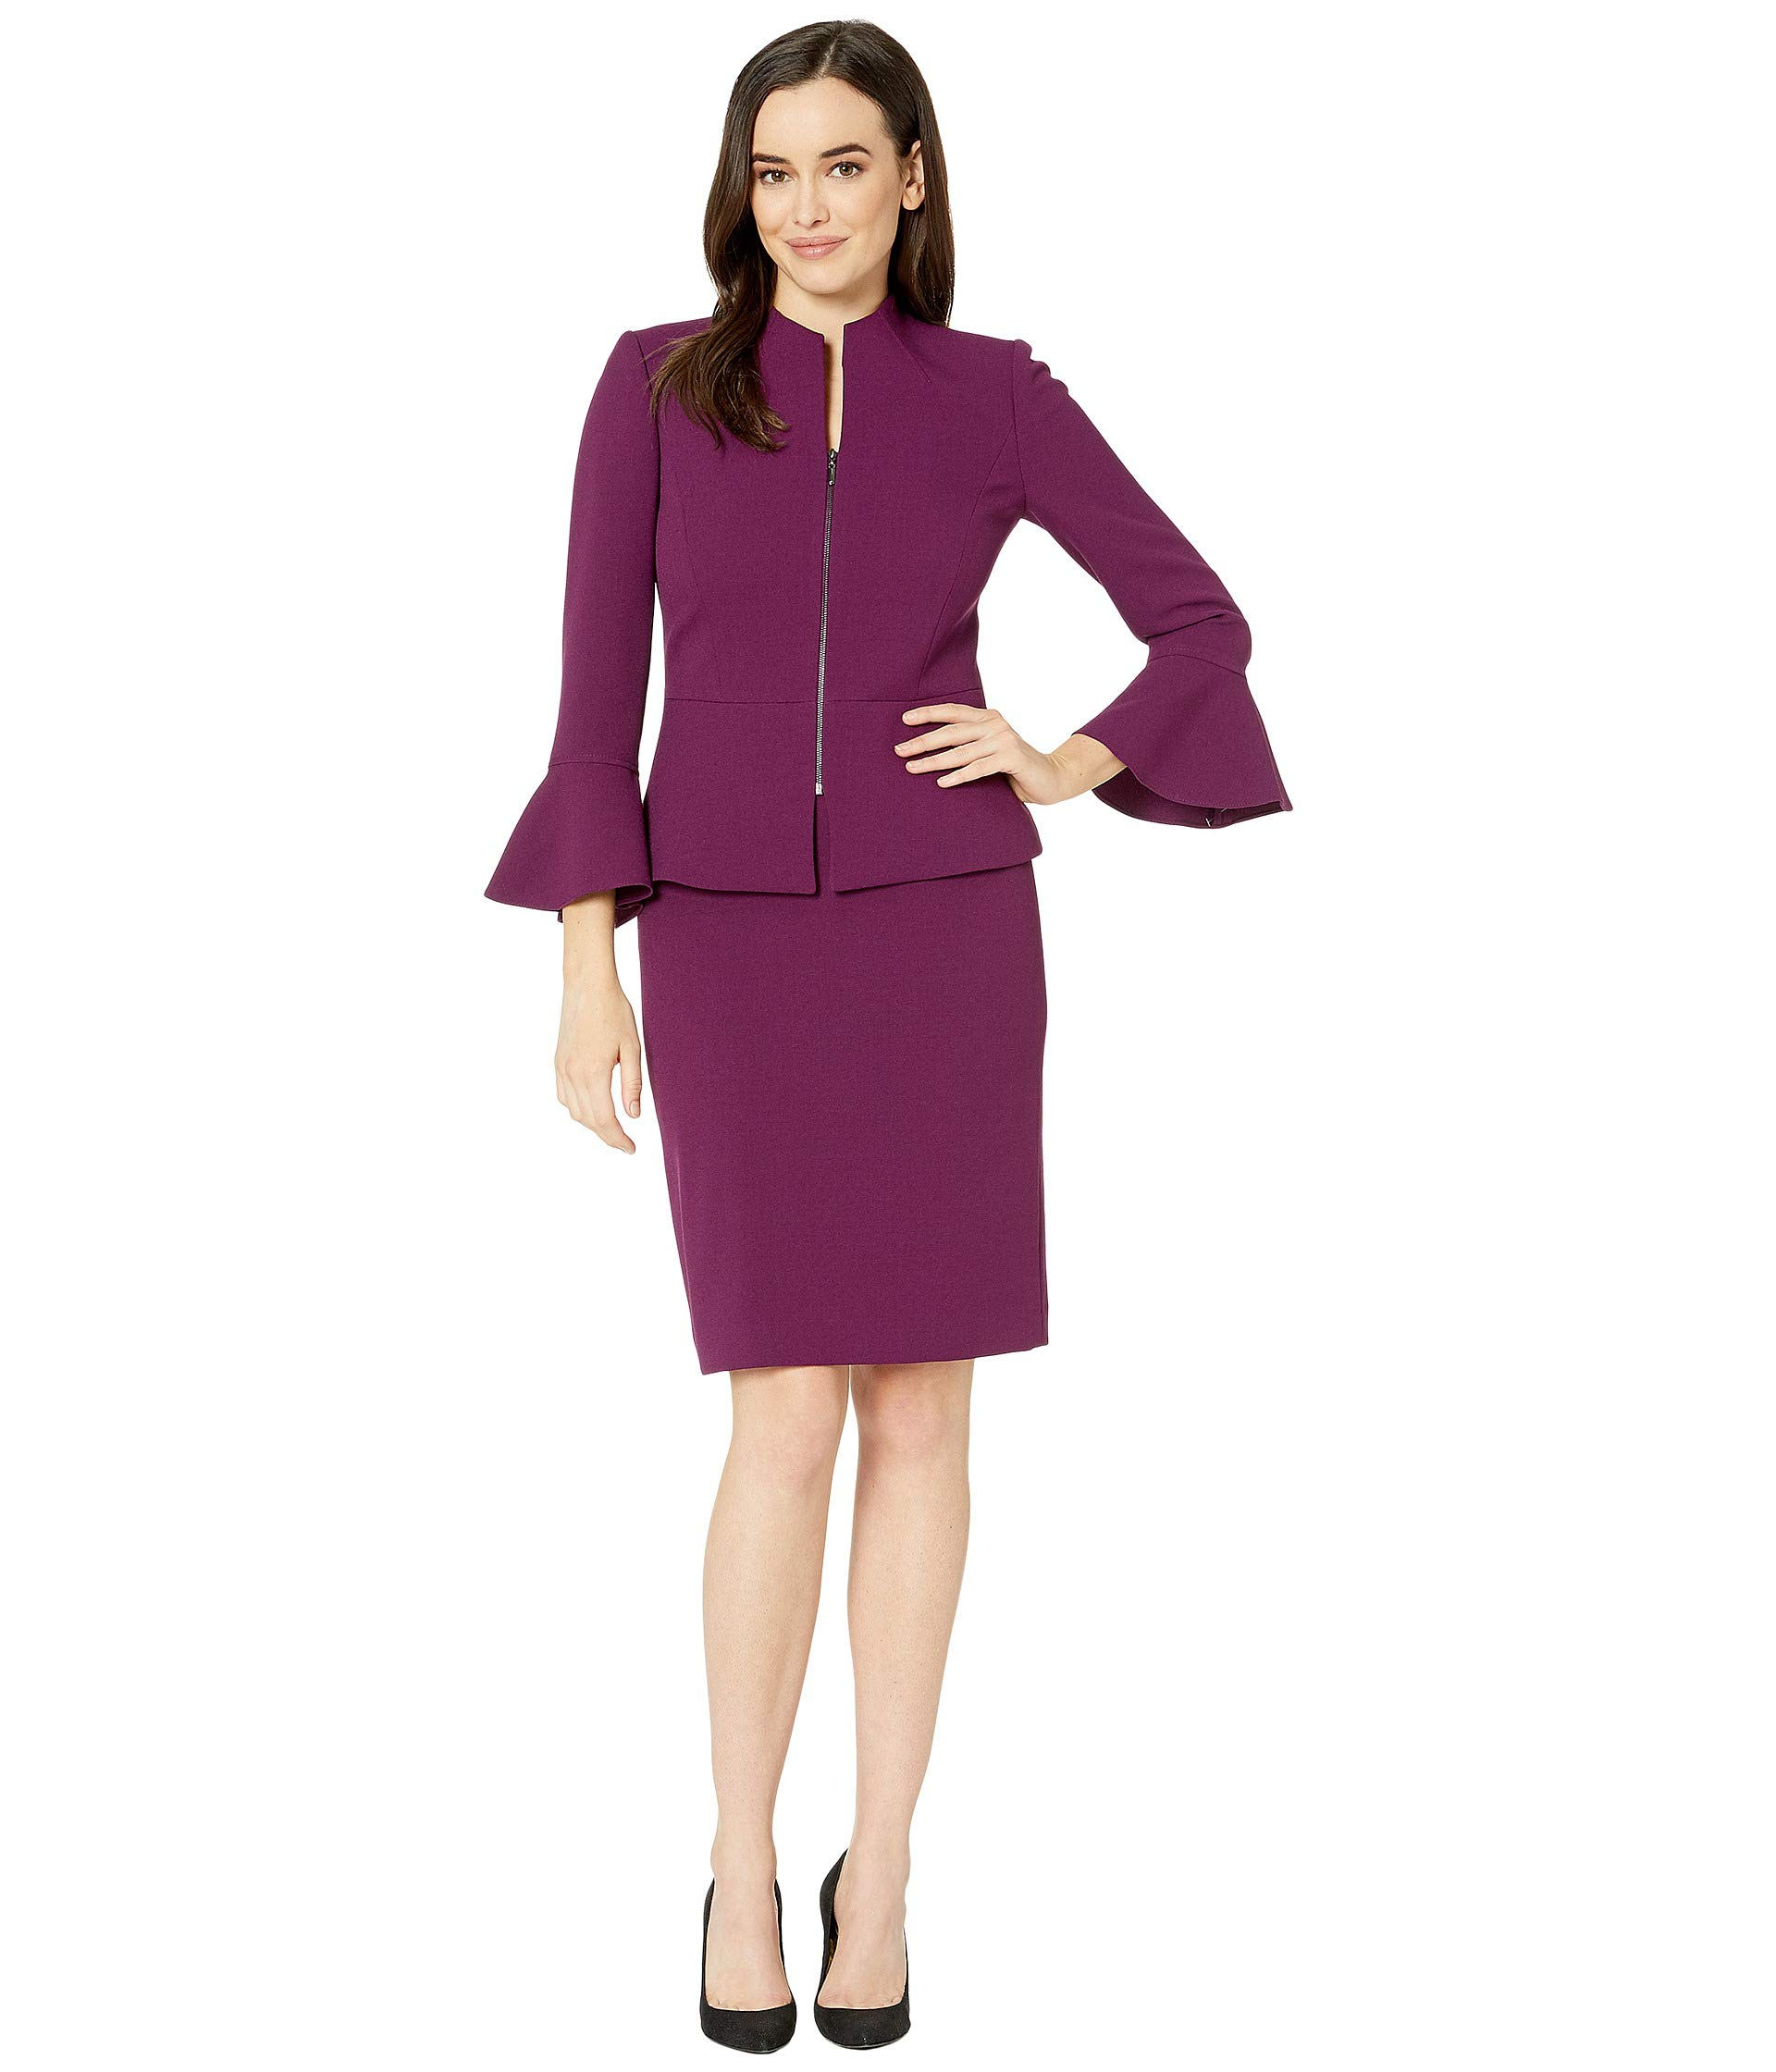 Tahari by ASL Women's Skirt Suit with Collarless Jacket Mulberry 14